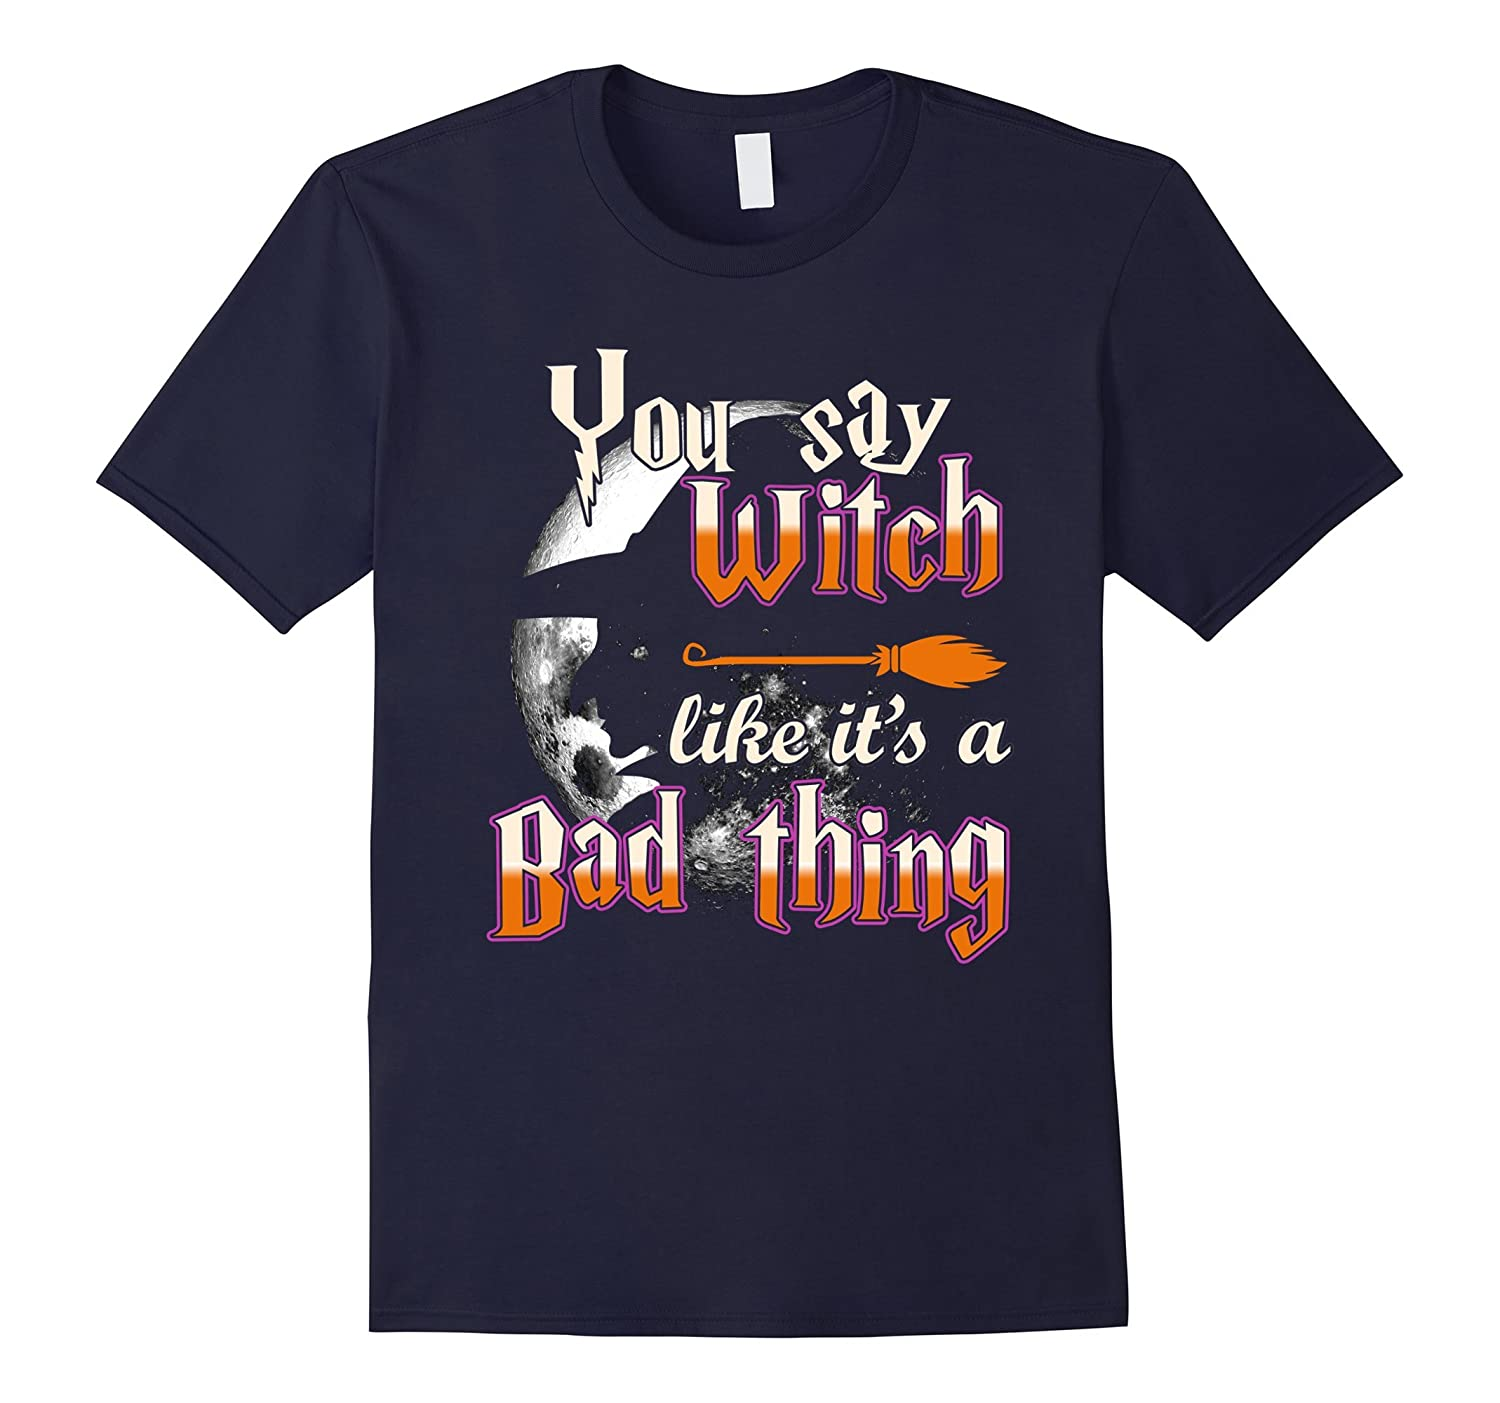 Halloween Shirts You Say Witch Like It's Bad Thing T-shirt-T-Shirt